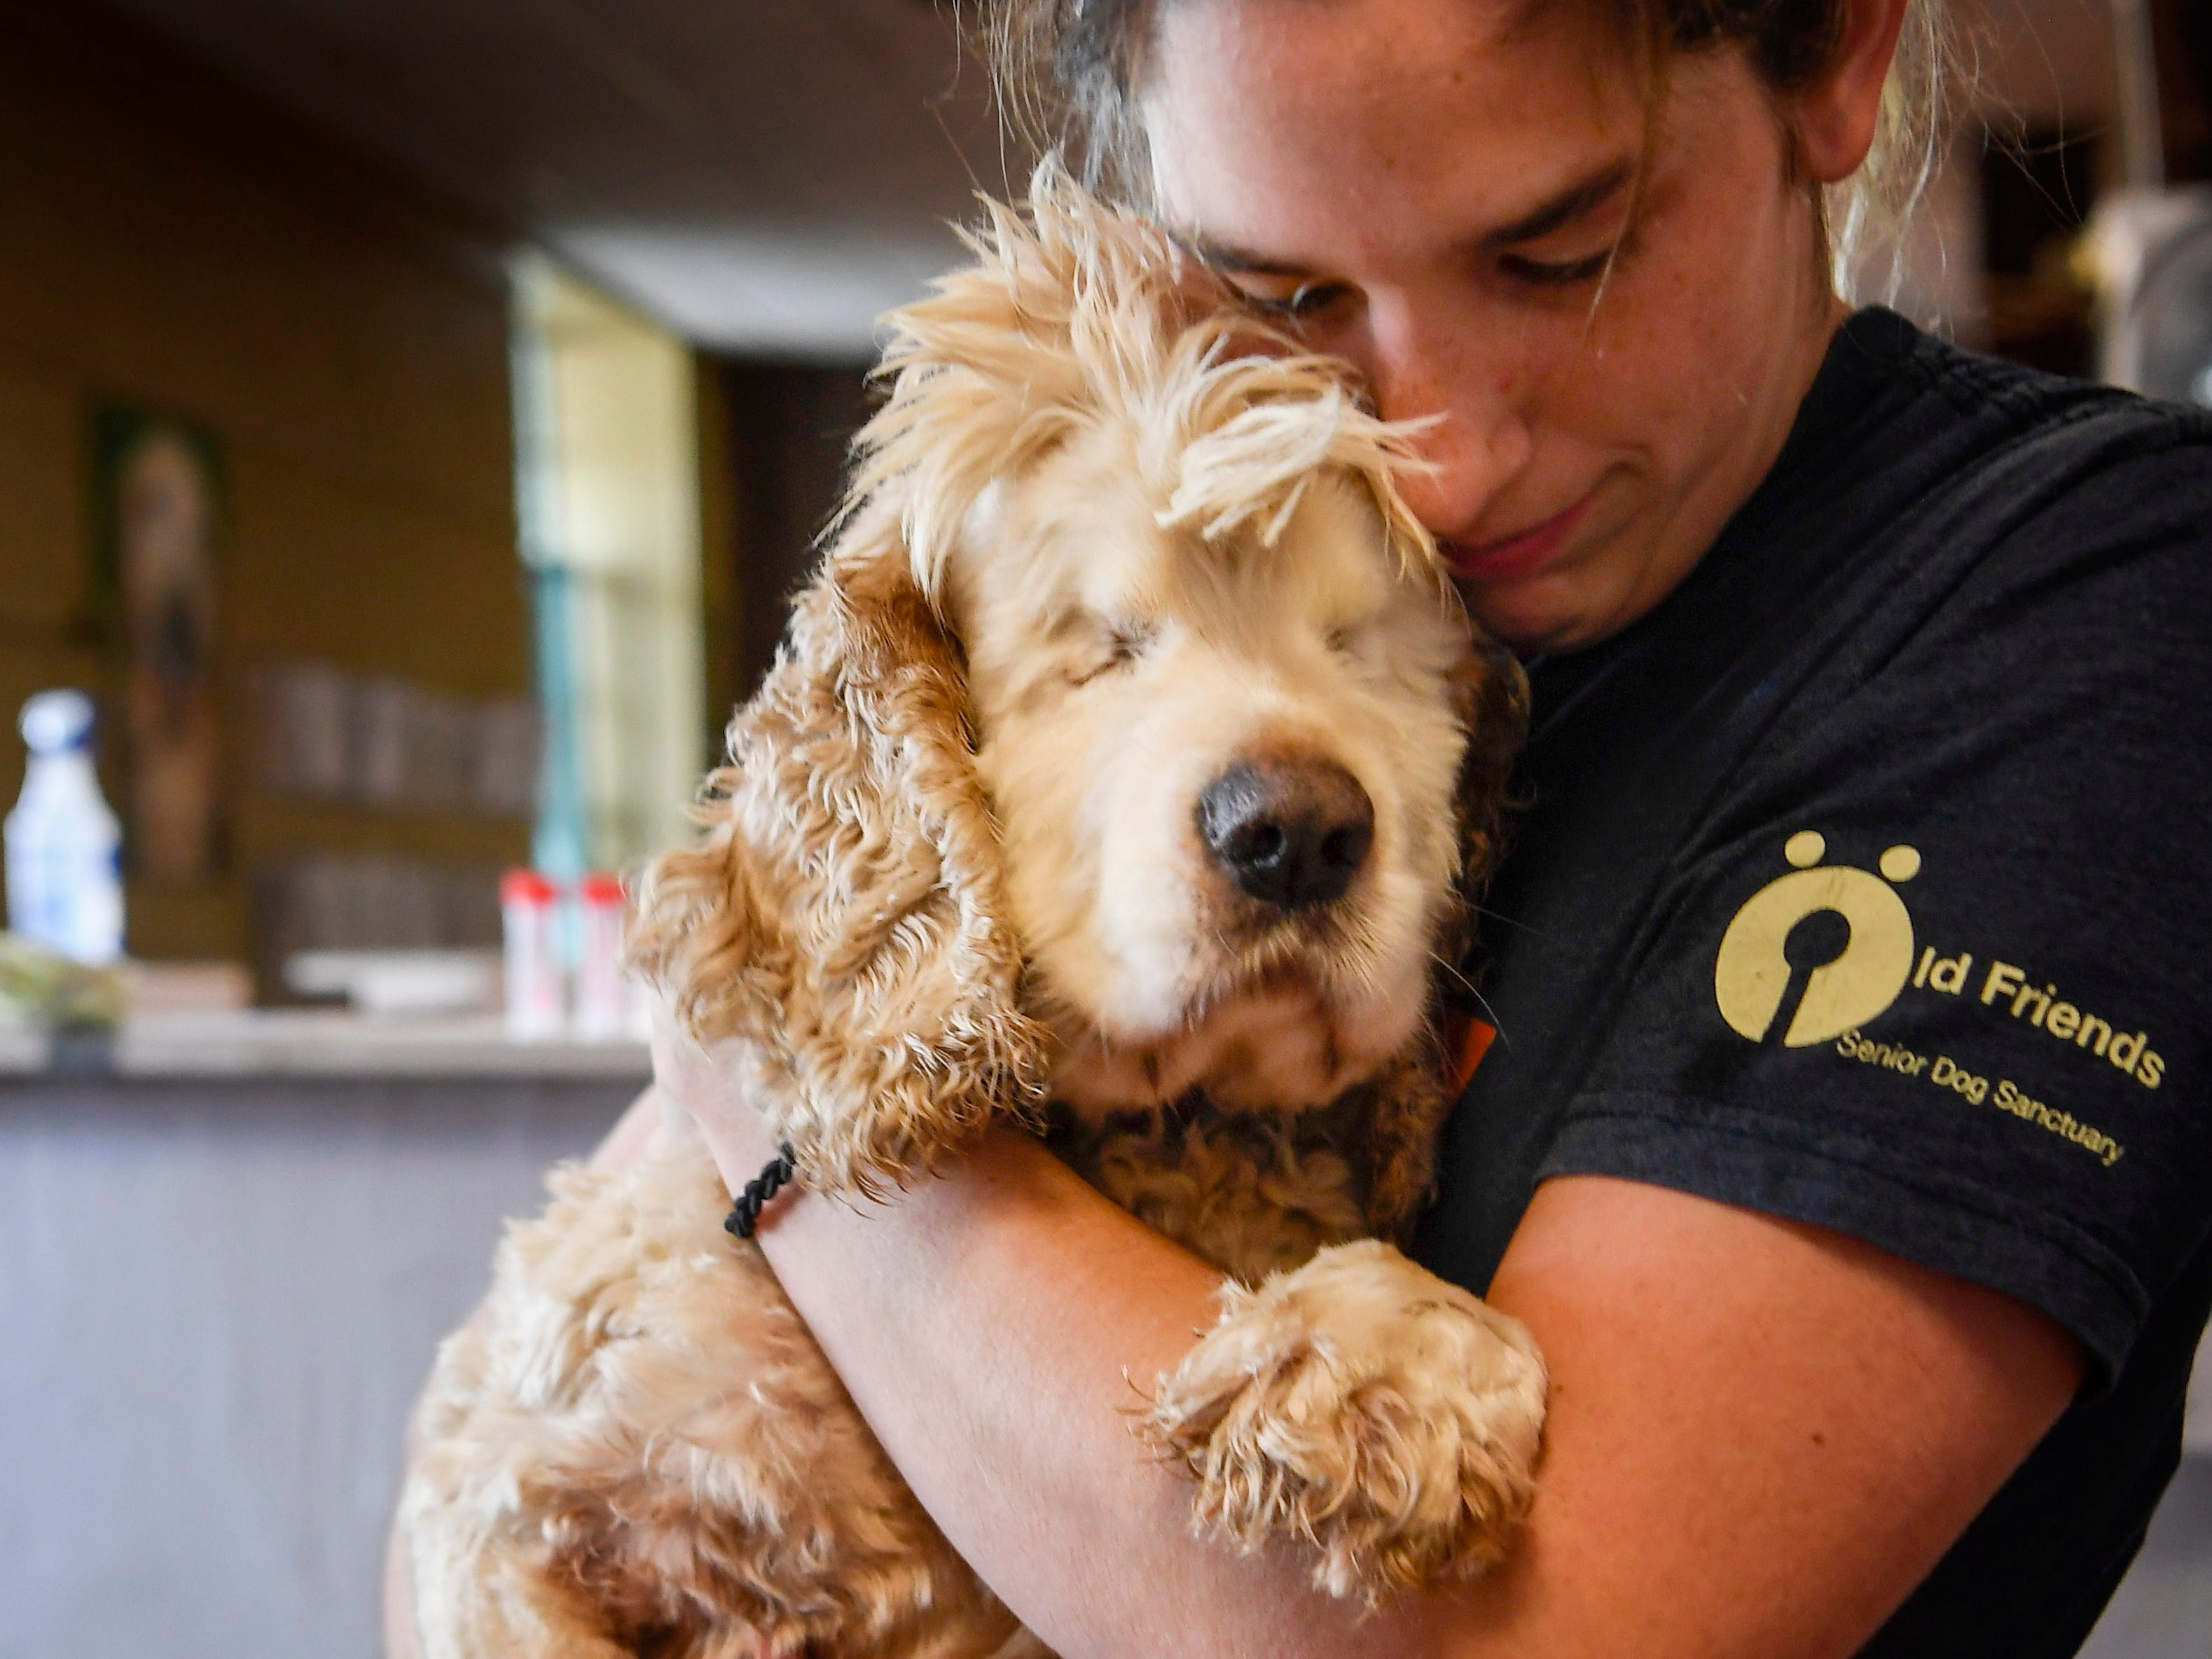 Kat Simpkins the dog care manager at the Old Friends Senior Dog Sanctuary in Mount Juliet loves on Mack, Tenn., Monday, Sept. 24, 2018.